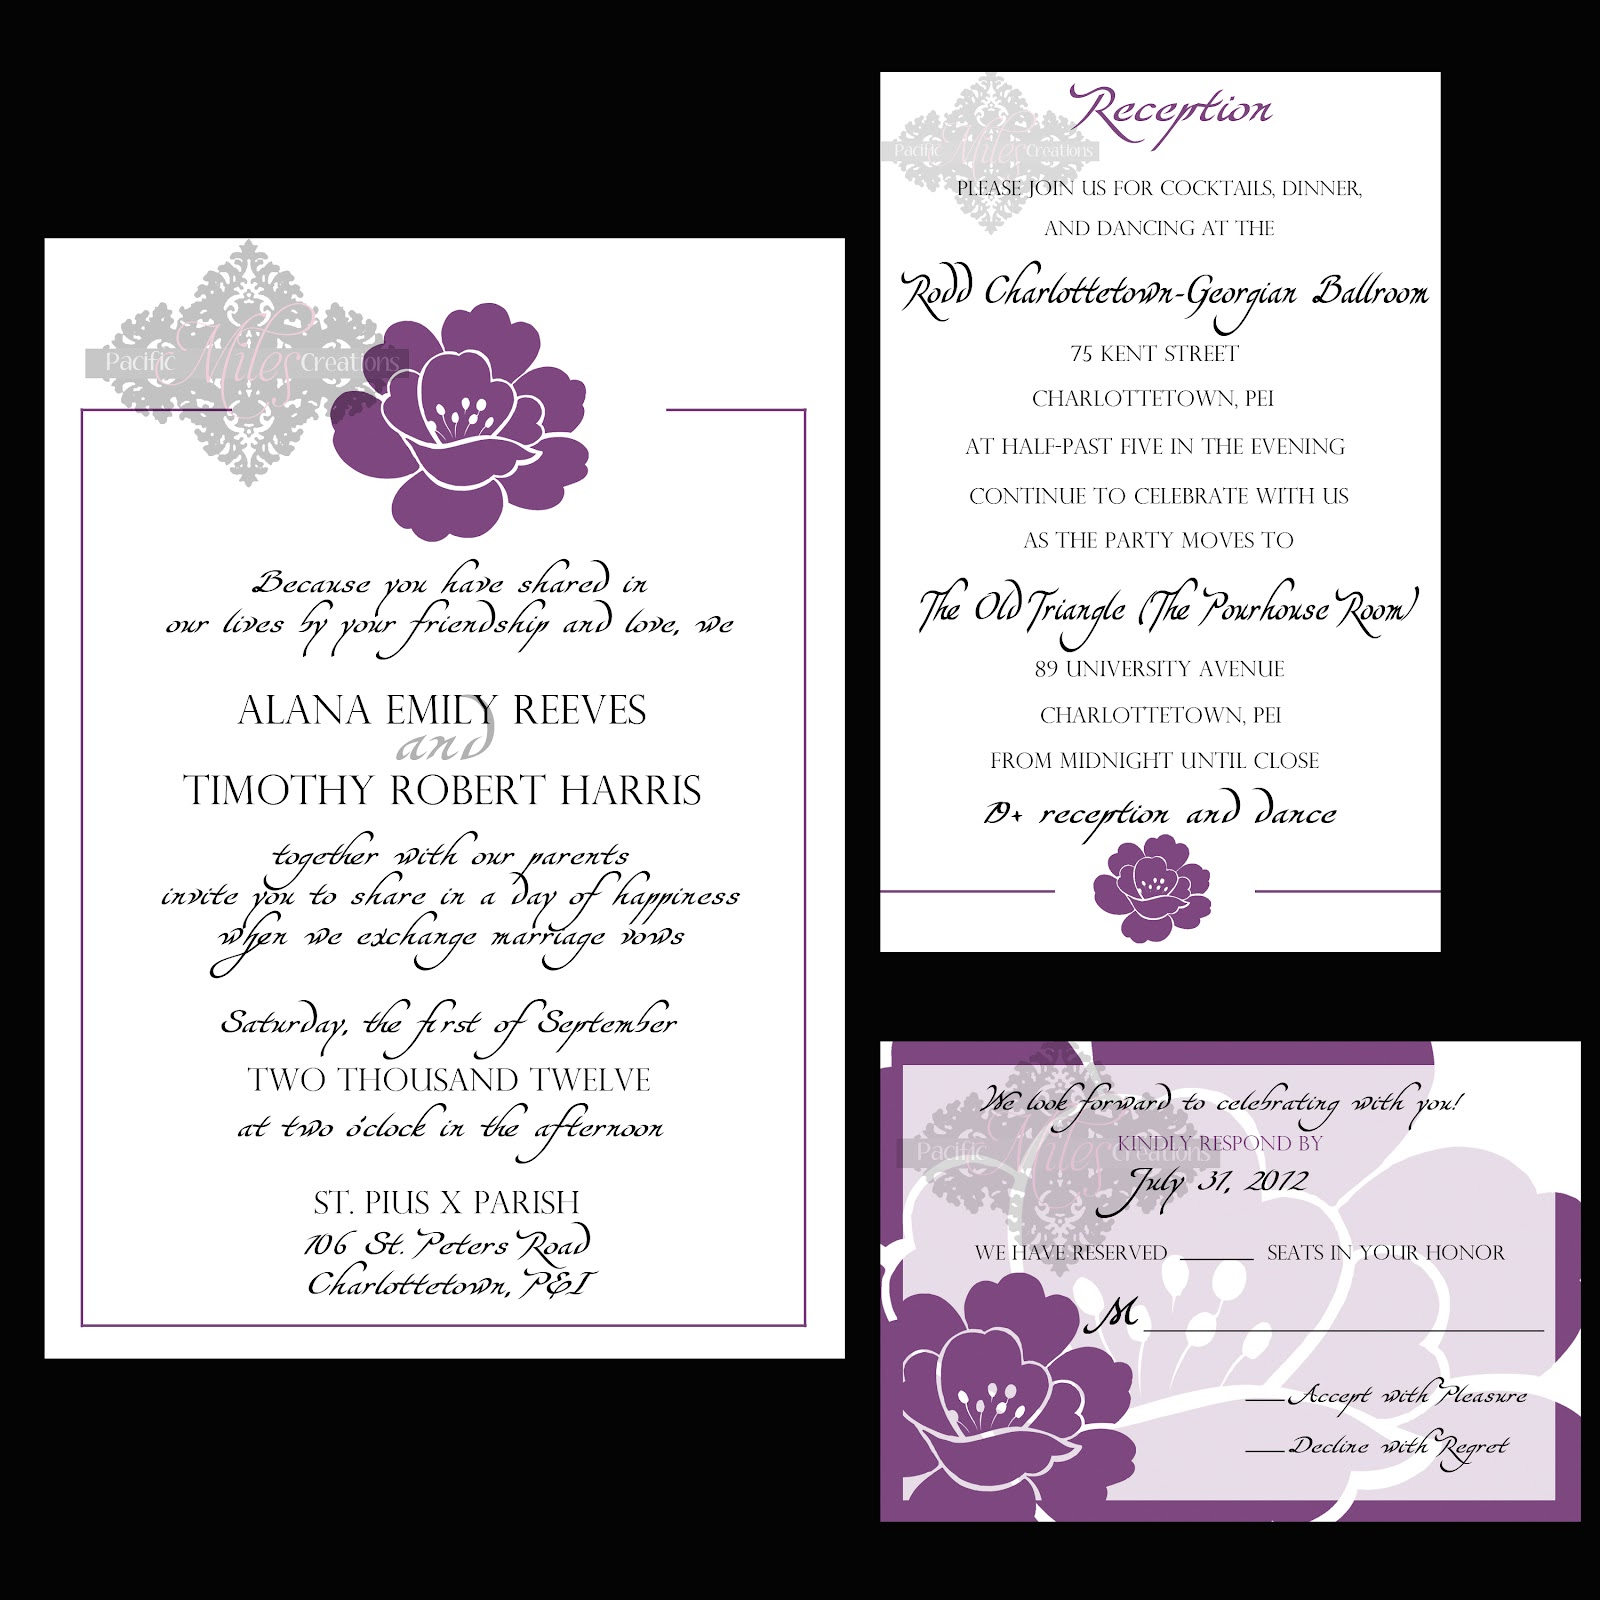 wedding invitations templates wedding plan ideas With wedding invitations with photo upload